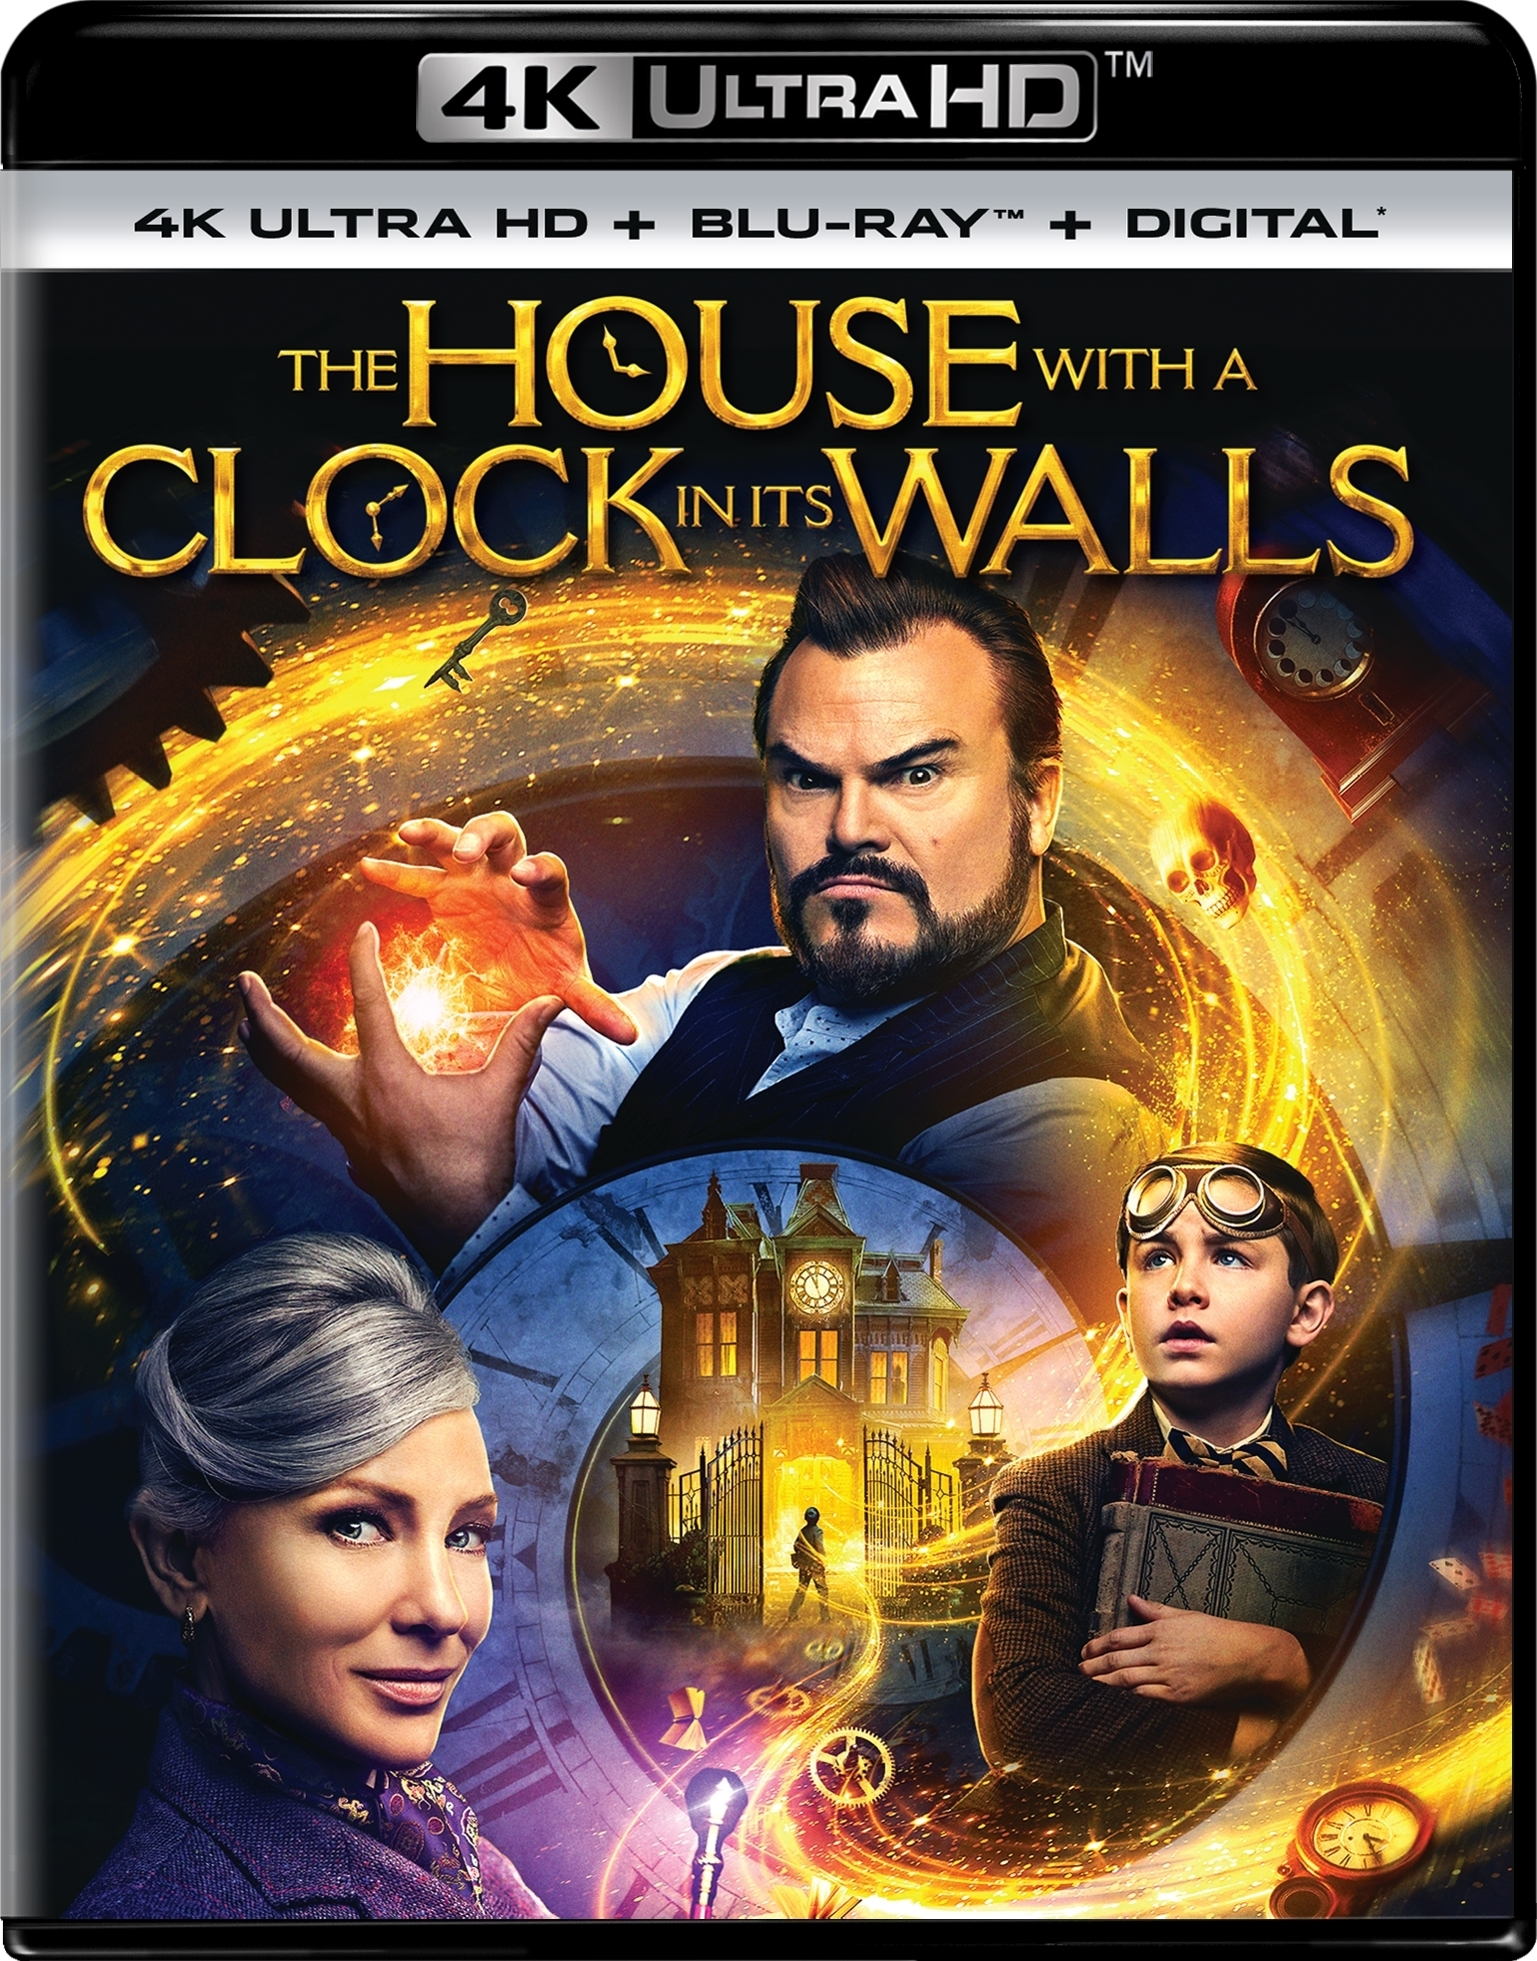 The House with a Clock in Its Walls 4K (2018) Ultra HD Blu-ray